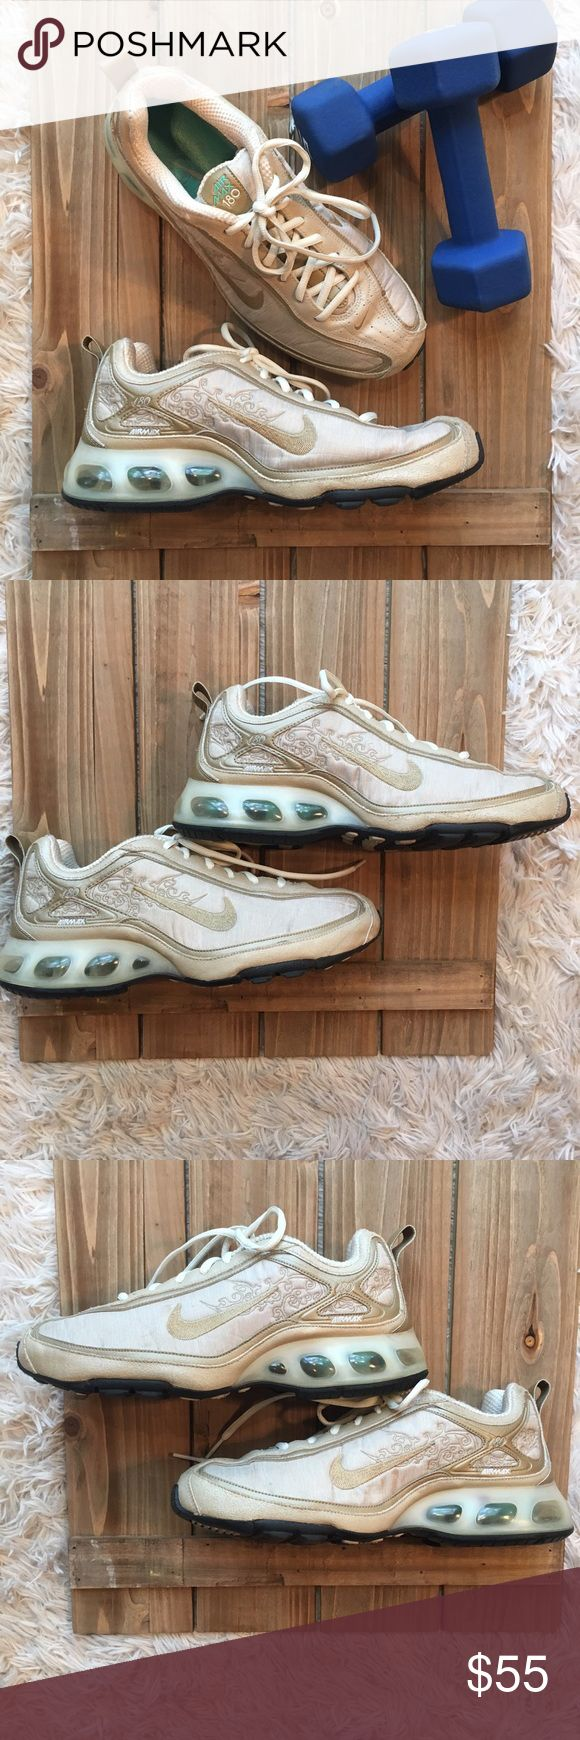 Limited Edition Nike Air Max 180 Light gold and champagne color/good used condition/only worn a few times Nike Shoes Athletic Shoes